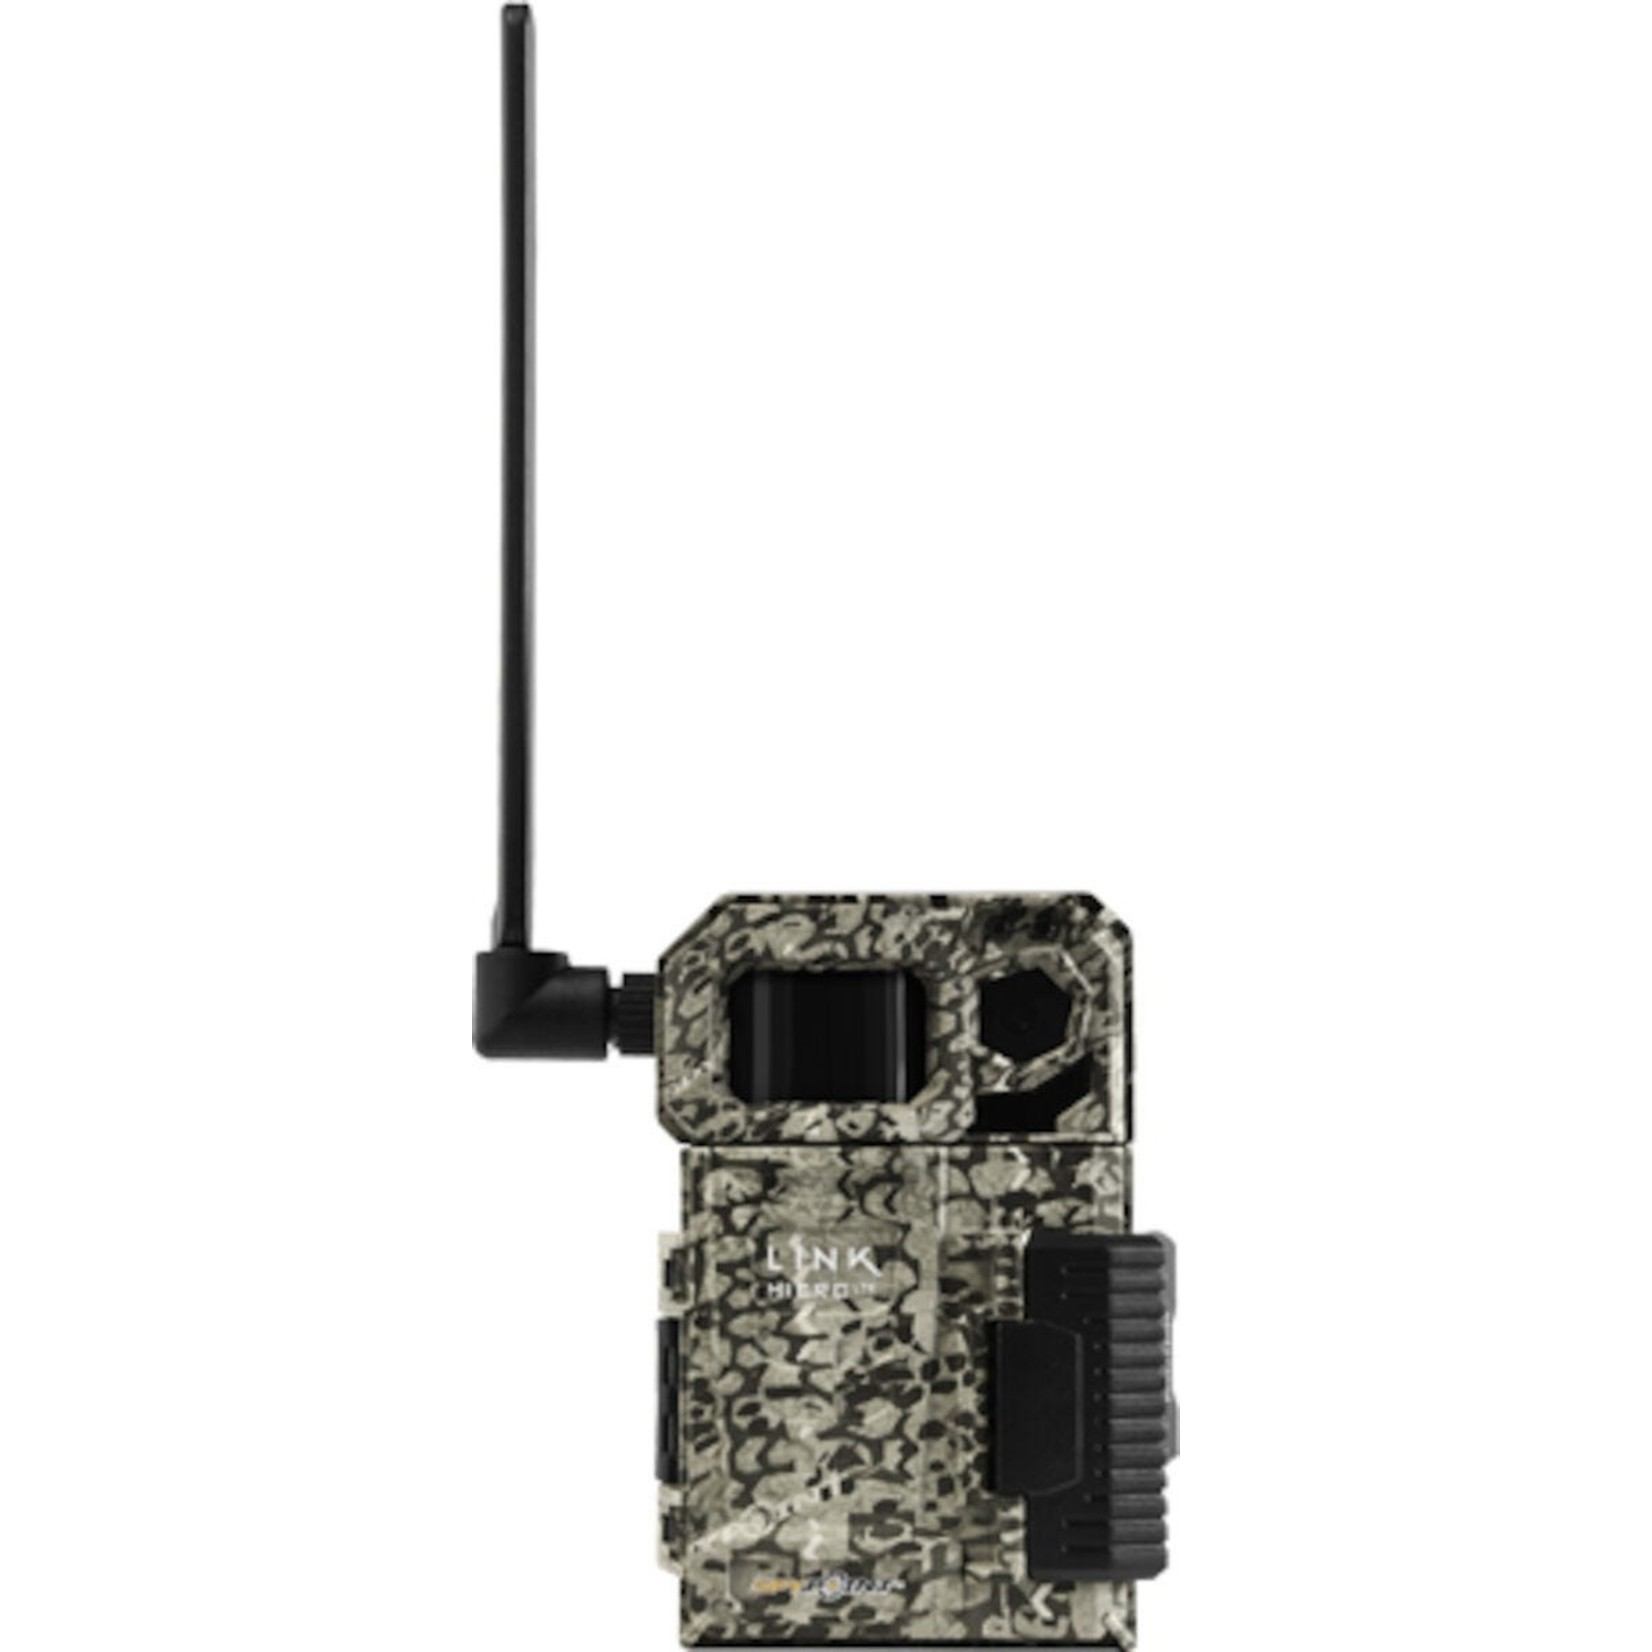 Spypoint Spypoint Link Micro LTE